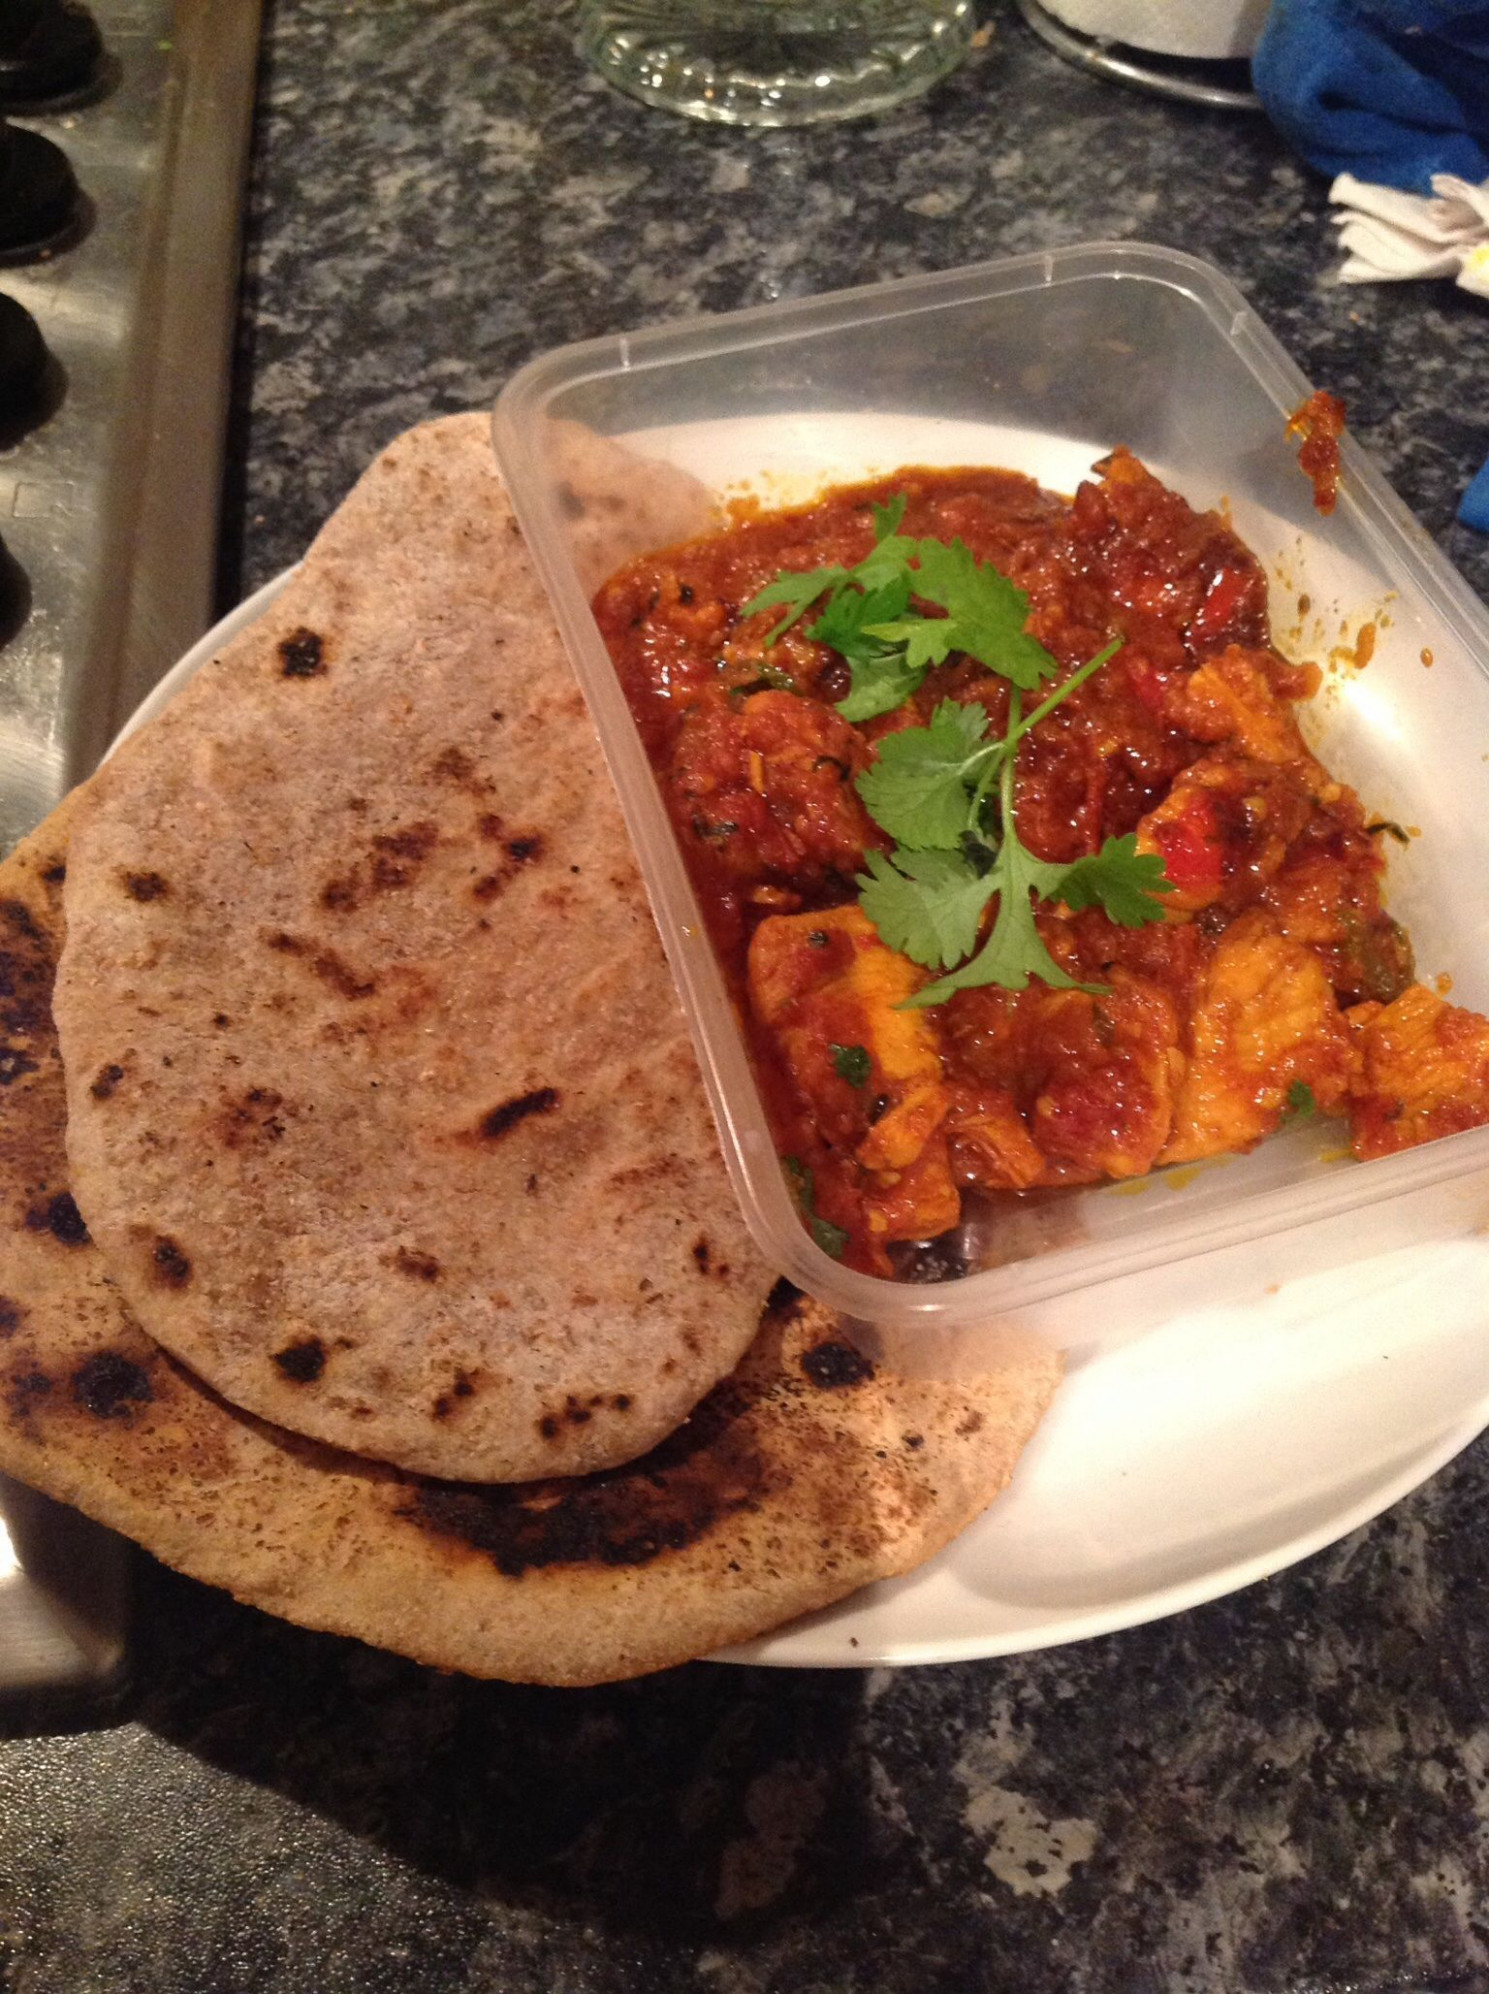 Chicken jalfrezi recipe - All recipes UK